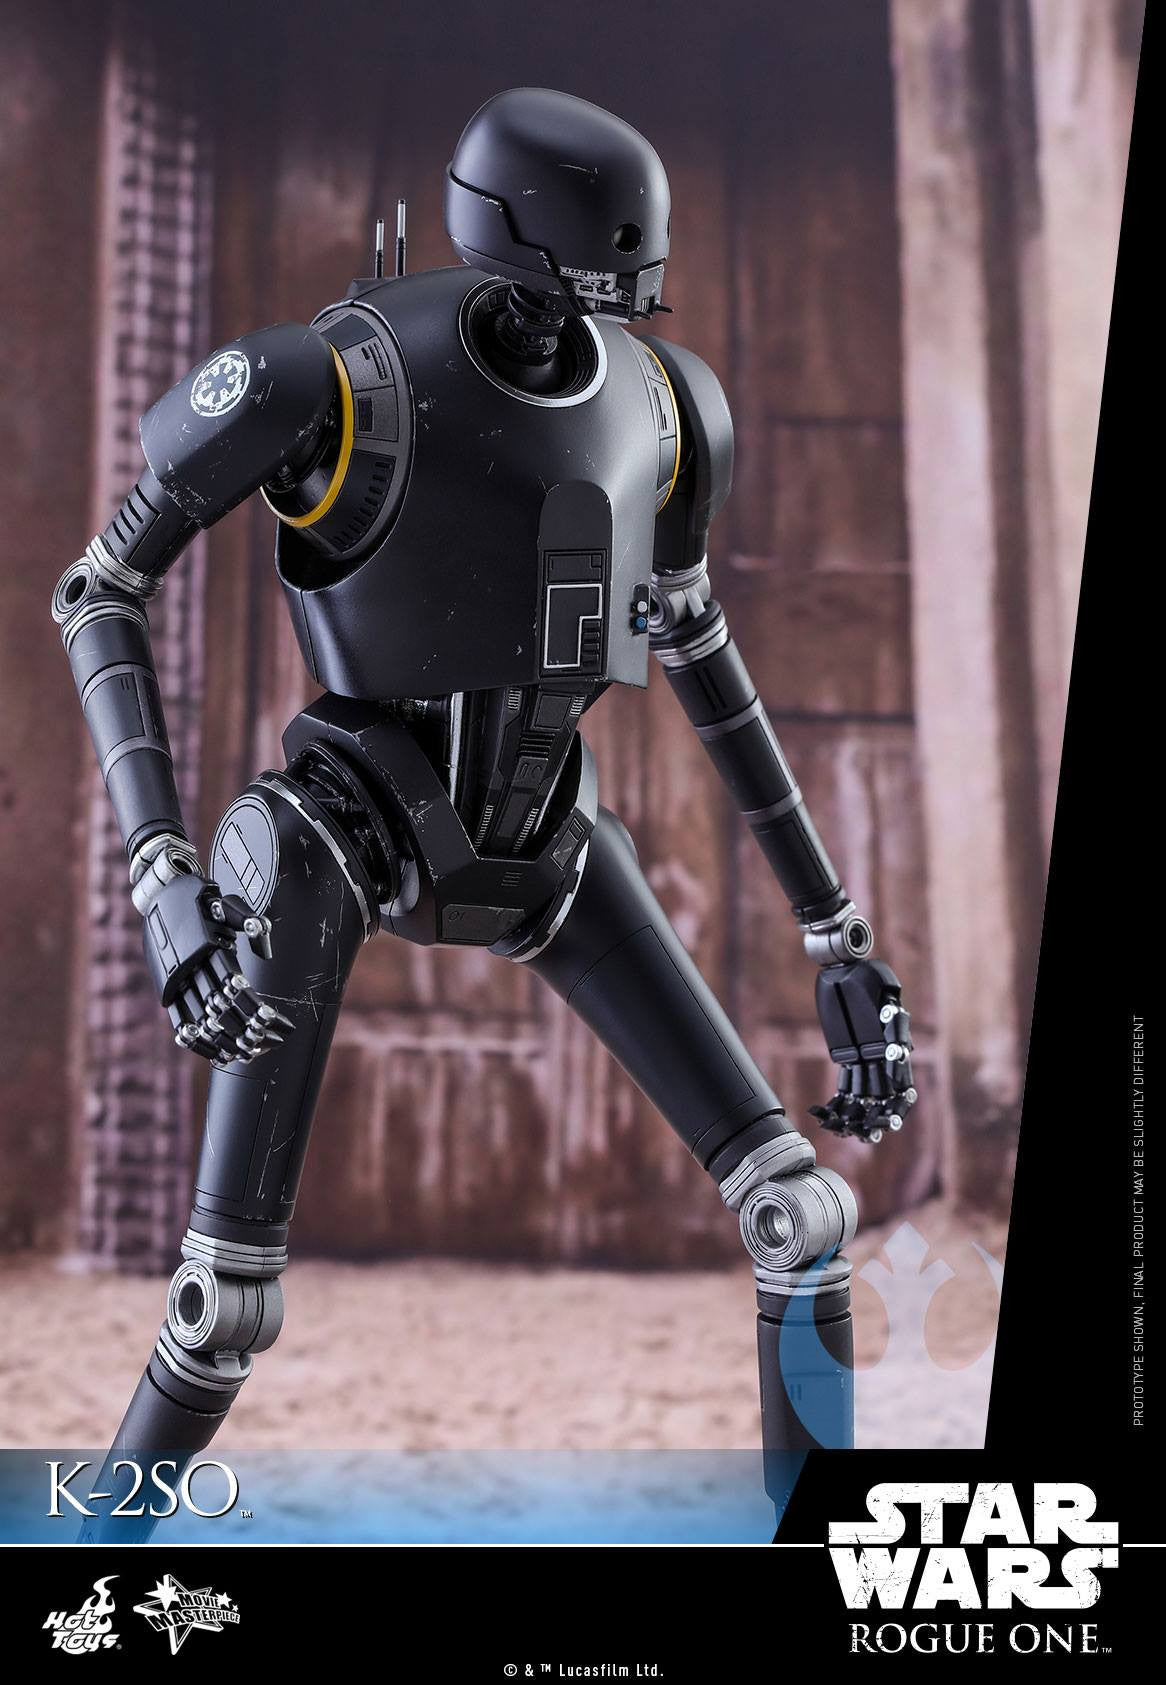 Hot Toys - MMS406 - Rogue One: A Star Wars Story - K-2SO - Marvelous Toys - 6